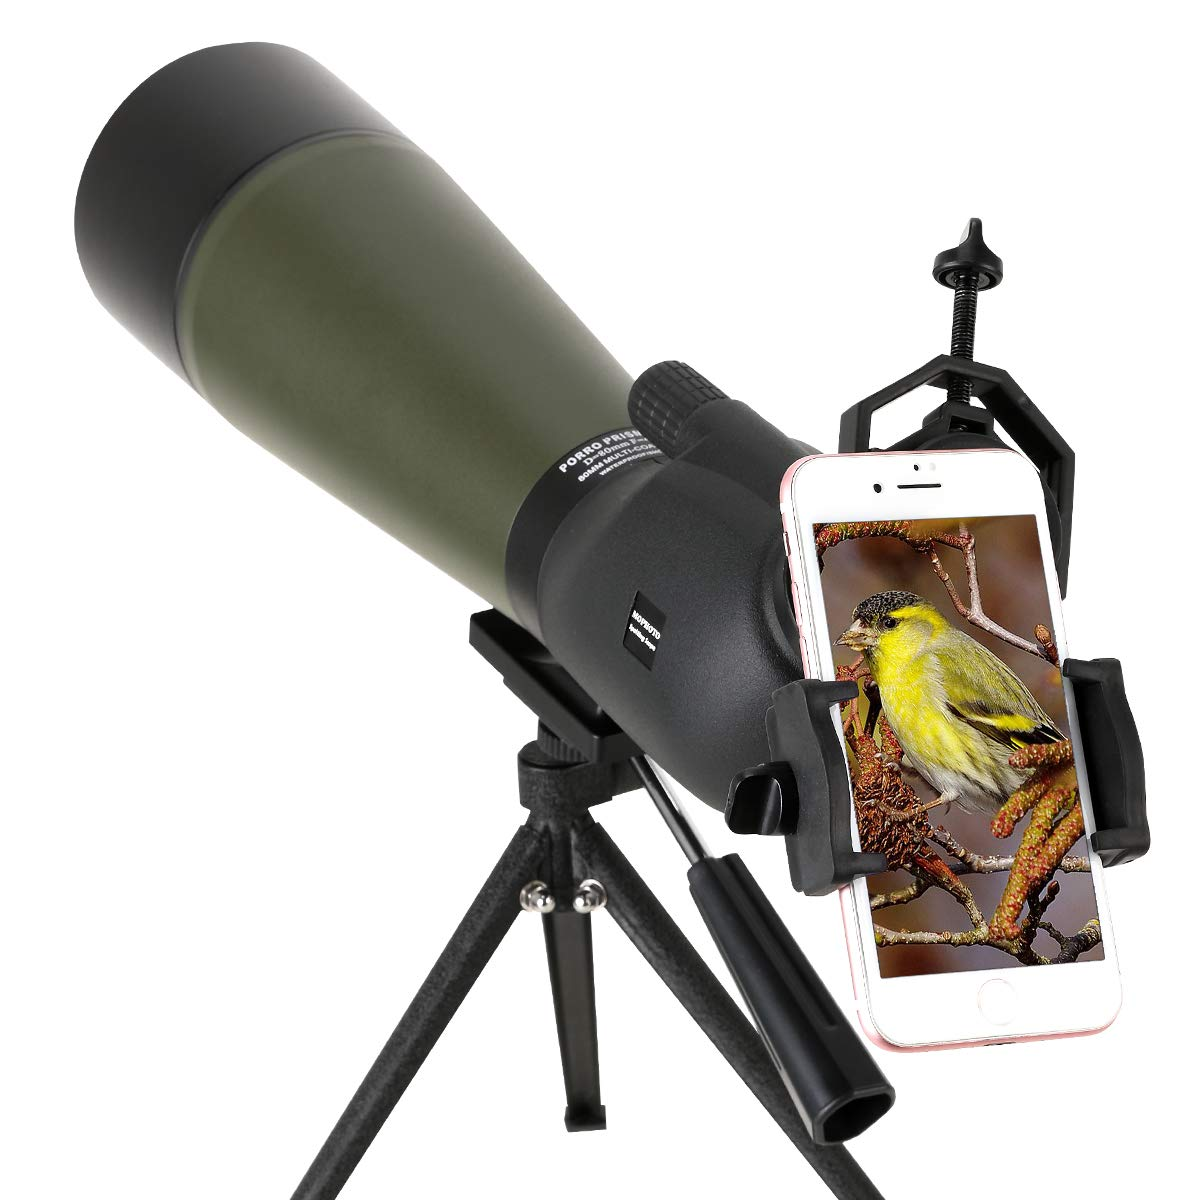 MOPHOTO 20-60x80 Waterproof Angled Spotting Scope with Tripod, 45-Degree Angled Eyepiece, Optics Zoom 39-19m/1000m for Target Shooting Bird Watching Hunting Wildlife Scenery by MOPHOTO